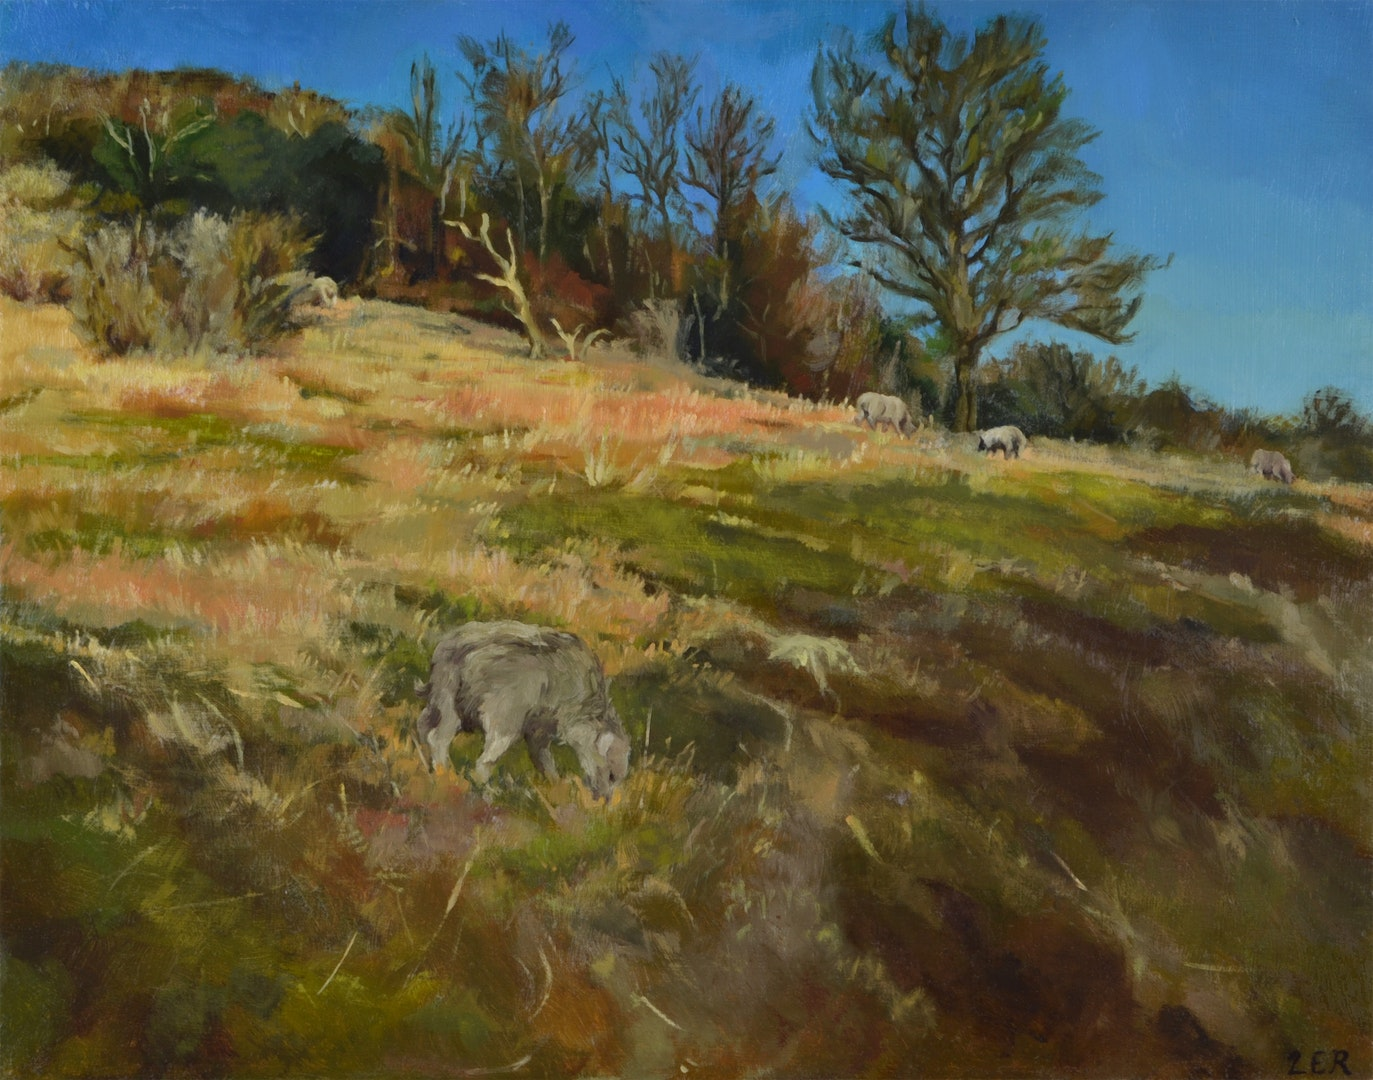 'Moulsecoomb Park', Lancelot Richardson, Oil on board, 50 x 40 cm